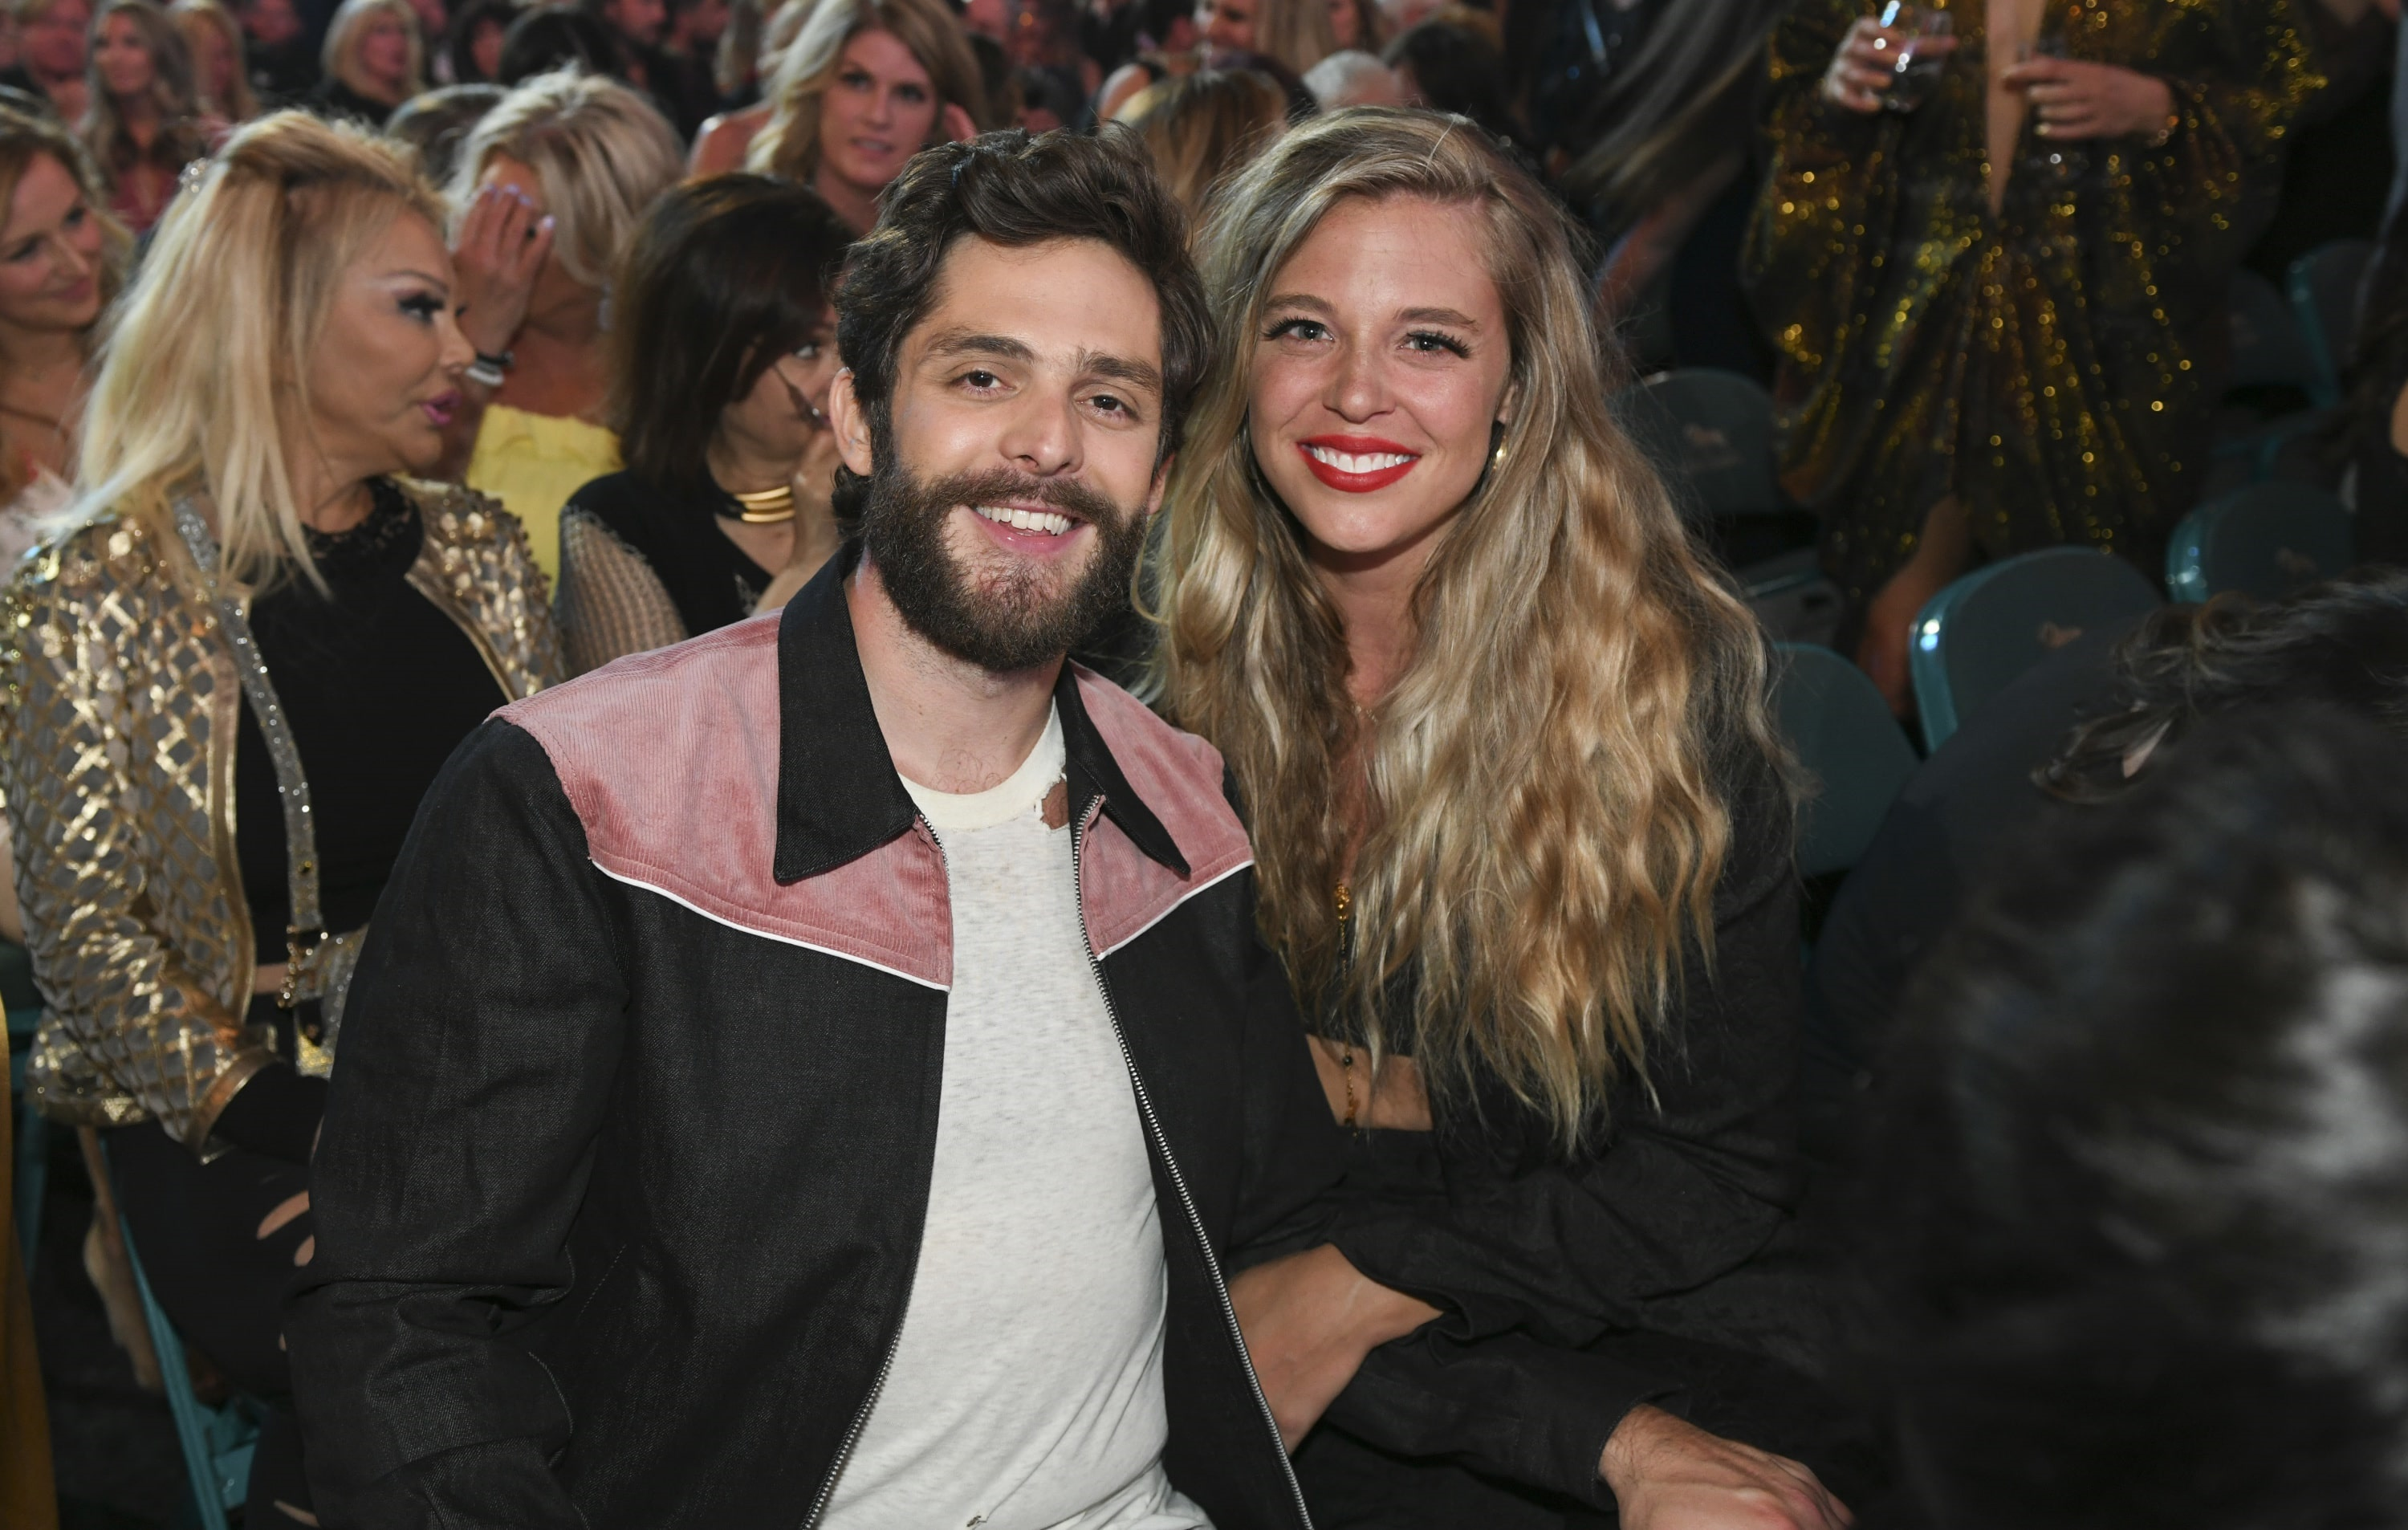 Thomas Rhett and Lauren Akins during the 54TH ACADEMY OF COUNTRY MUSIC AWARDS, to broadcast LIVE from MGM Grand Garden Arena in Las Vegas Sunday, April 7, 2019 (8:00-11:00 PM, ET/delayed PT) on the CBS Television Network. Photo: Sam Morris/CBS ©2019 CBS Broadcasting, Inc. All Rights Reserved